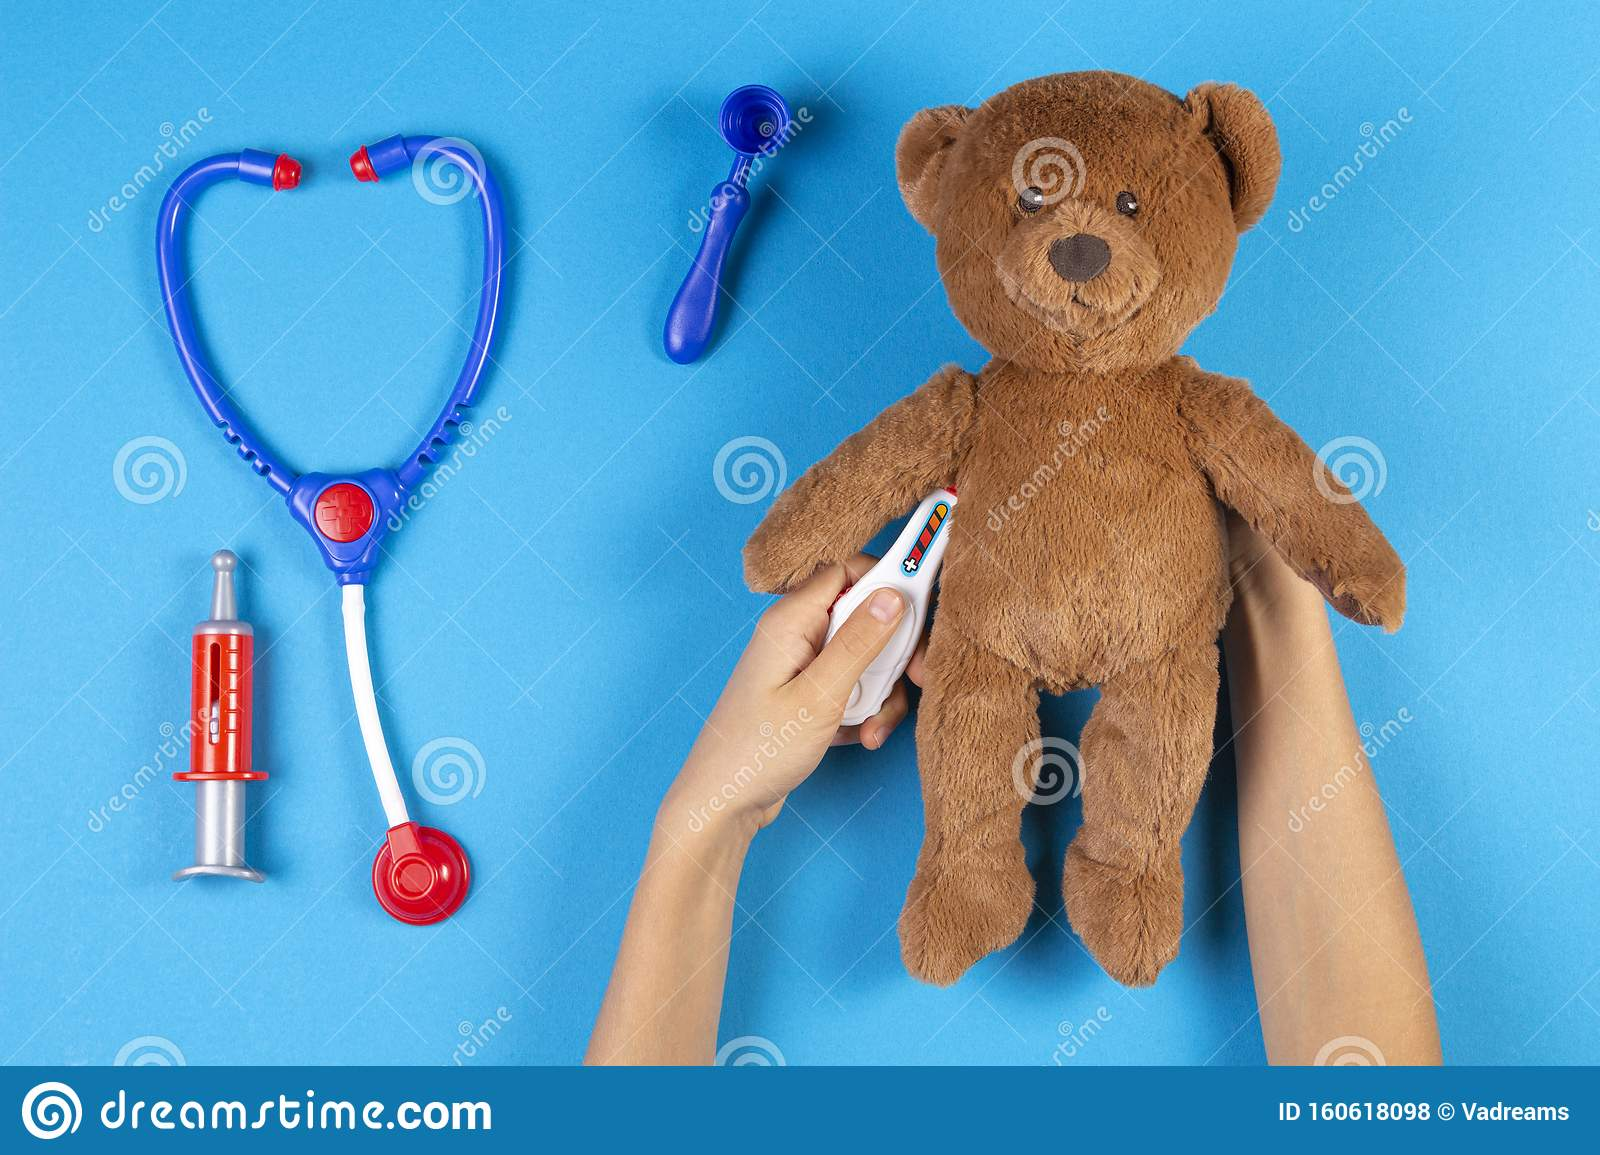 Kid Hands Measuring Temperature With Toy Thermometer Of